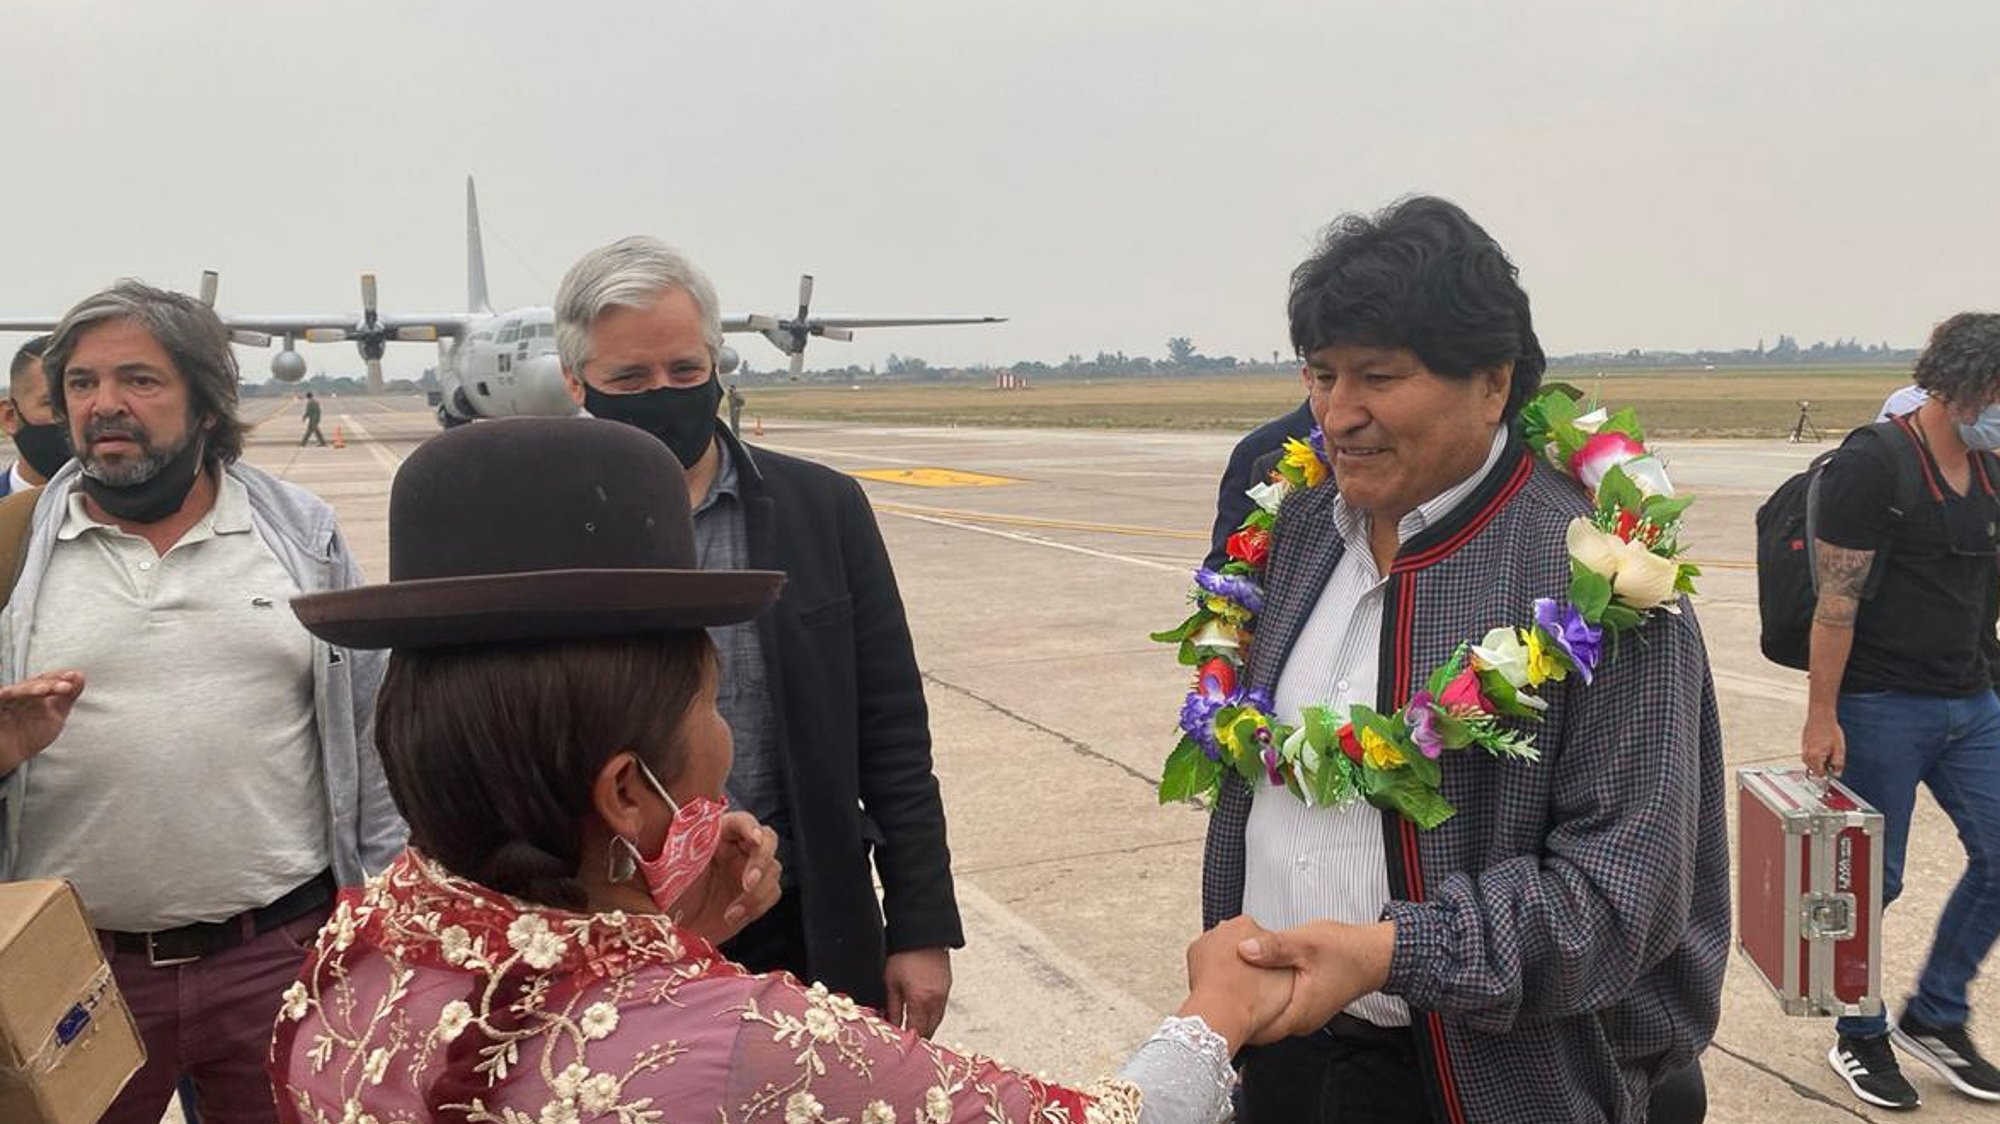 epa08808994 A handout photo made available by Evo Morales press office shows former President of Bolivia, Evo Morales (R), as he greets an indigenous woman upon arrival in the Province of Jujuy, Argentina, 08 November 2020. Morales plans to return to his country after a year of exile, stating that he was forced by a coup. He is expected to be received by a caravan as soon as he enters Bolivia from the border with Argentina, where he has remained since his departure from his home country.  EPA/EVO MORALES PRESS OFFICE / HANDOUT  HANDOUT EDITORIAL USE ONLY/NO SALES